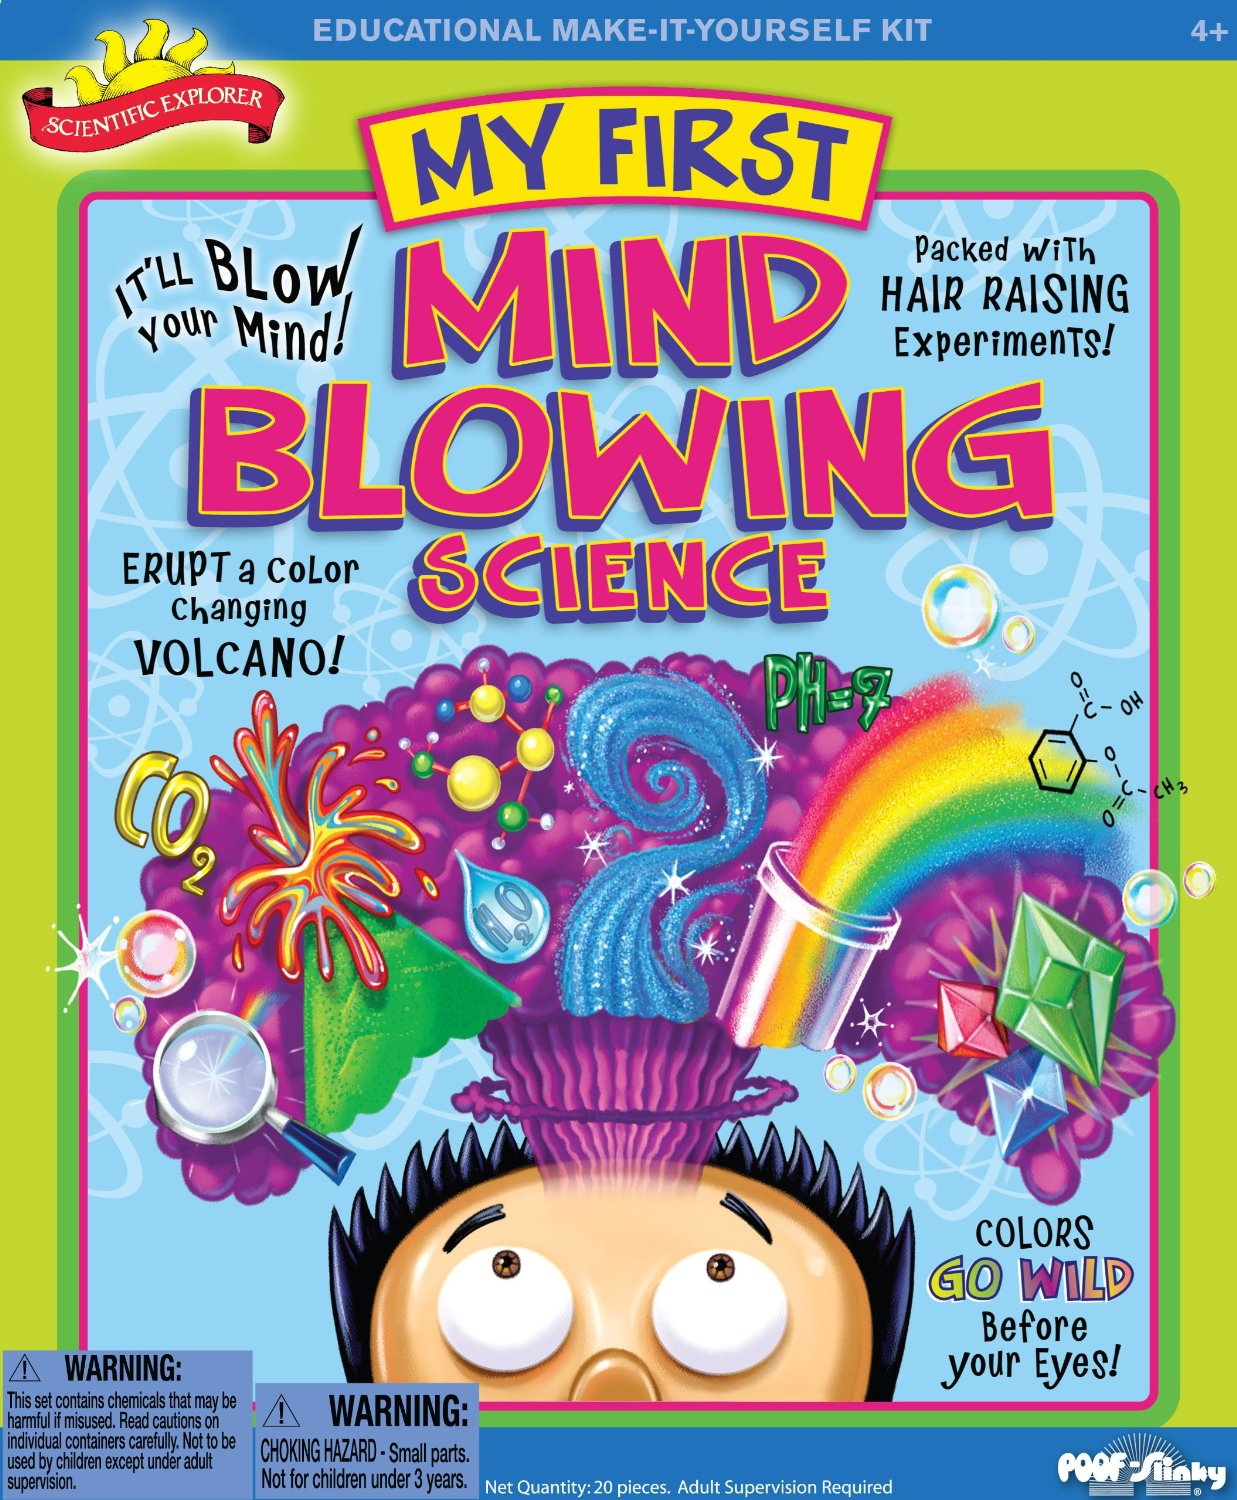 My First Mind Blowing Science Kit Only $12.06! (45% Off!)